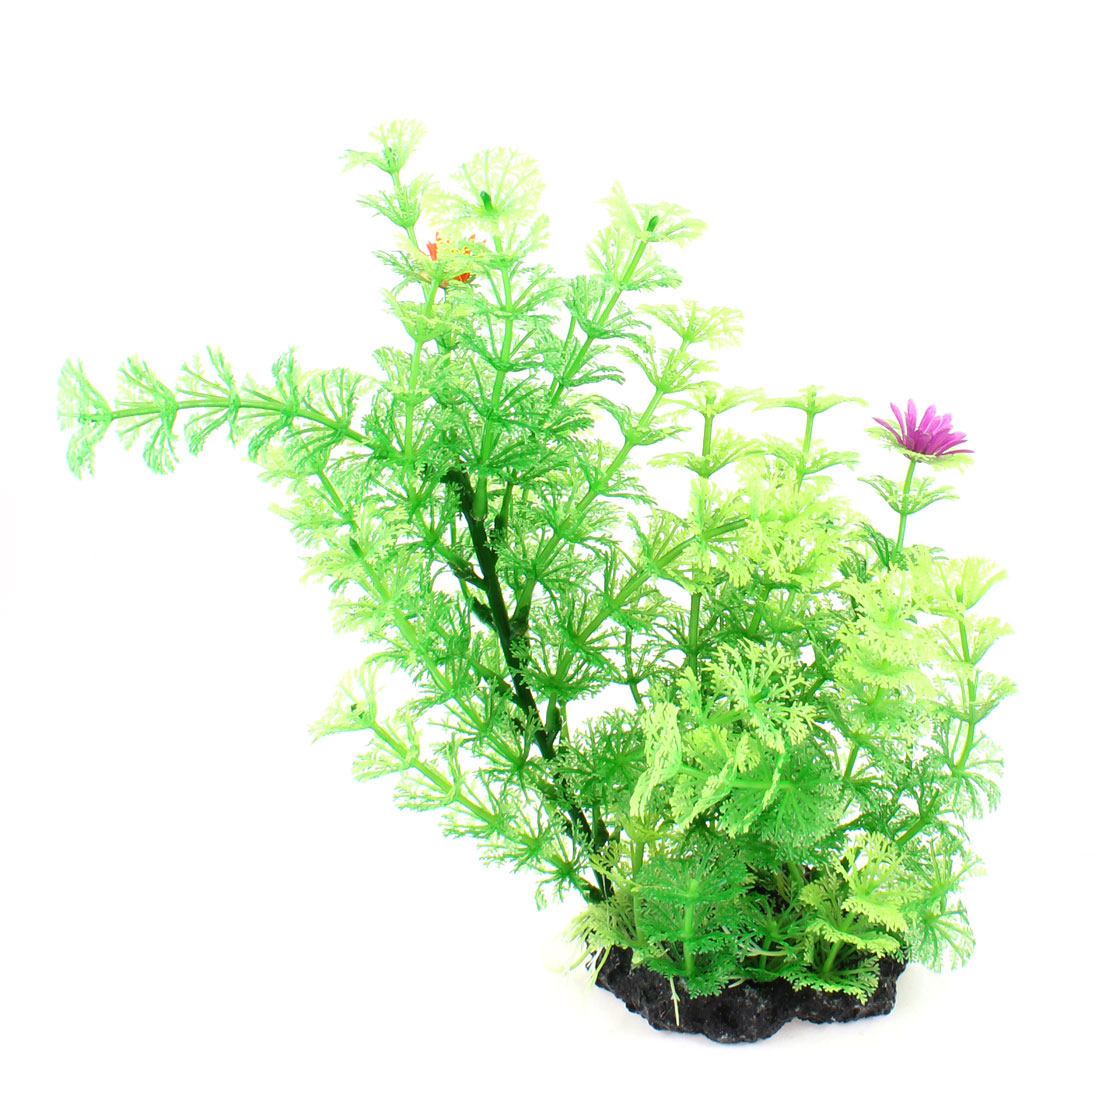 "Fish Tank Aquarium Green Snowflake Leaves Emulational Plastic Plant 10.2"" High"